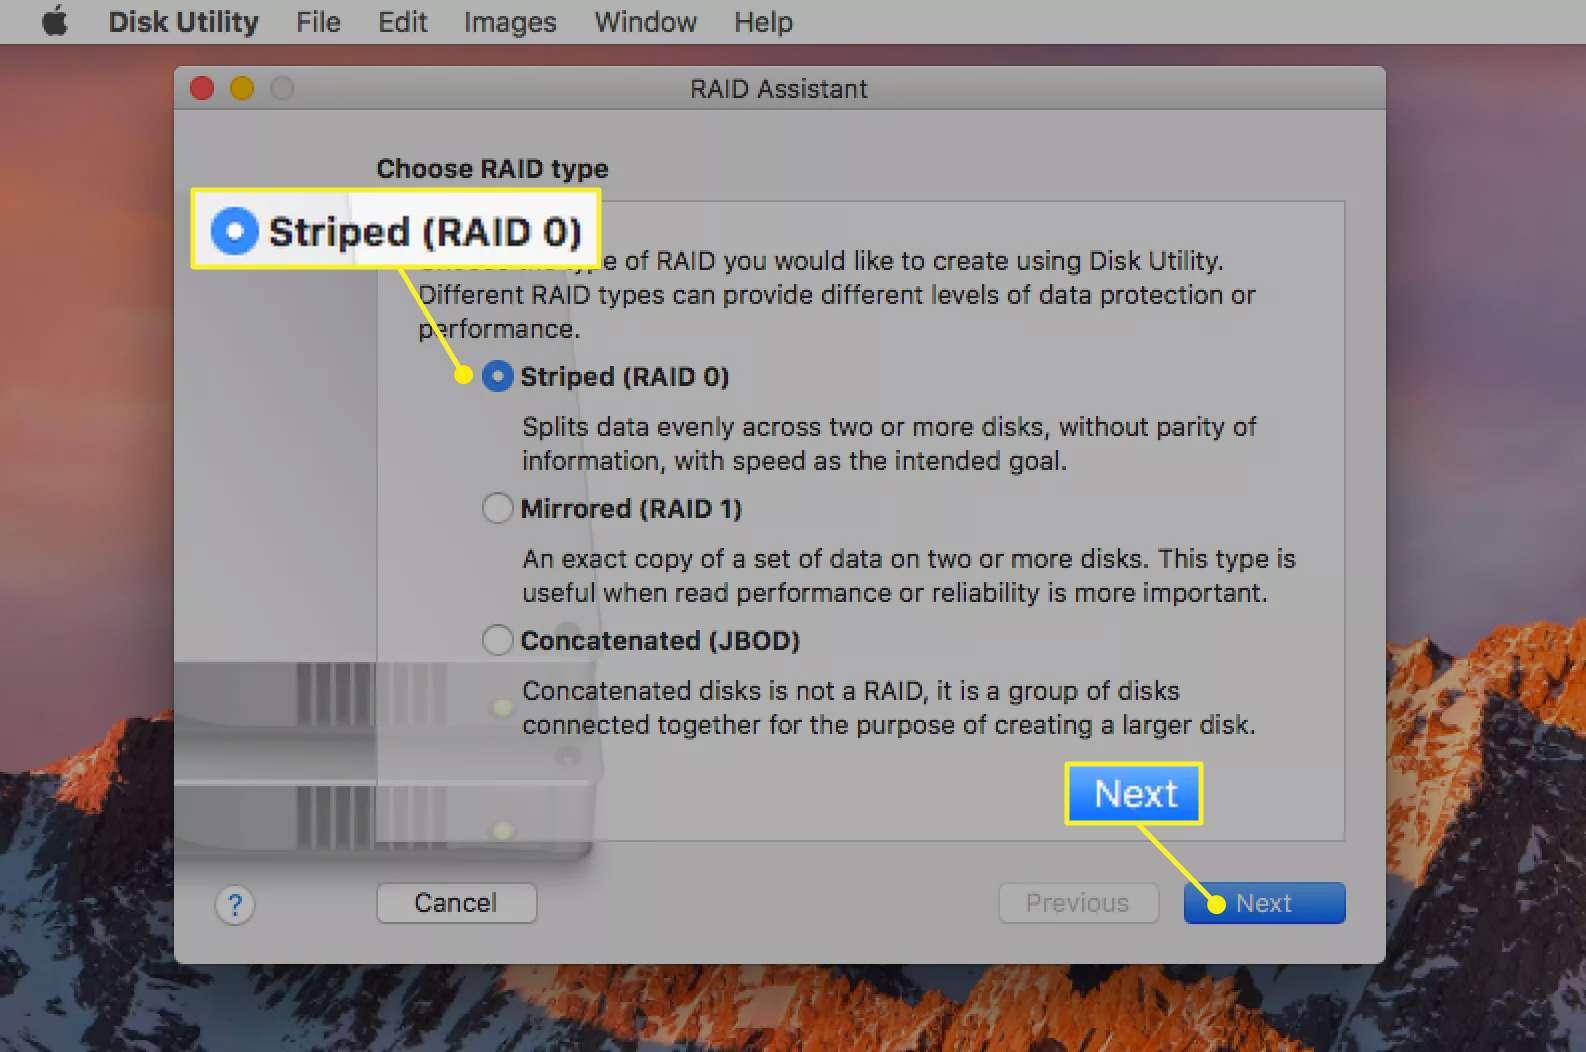 Striped (RAID 0) selected in Disk Utility